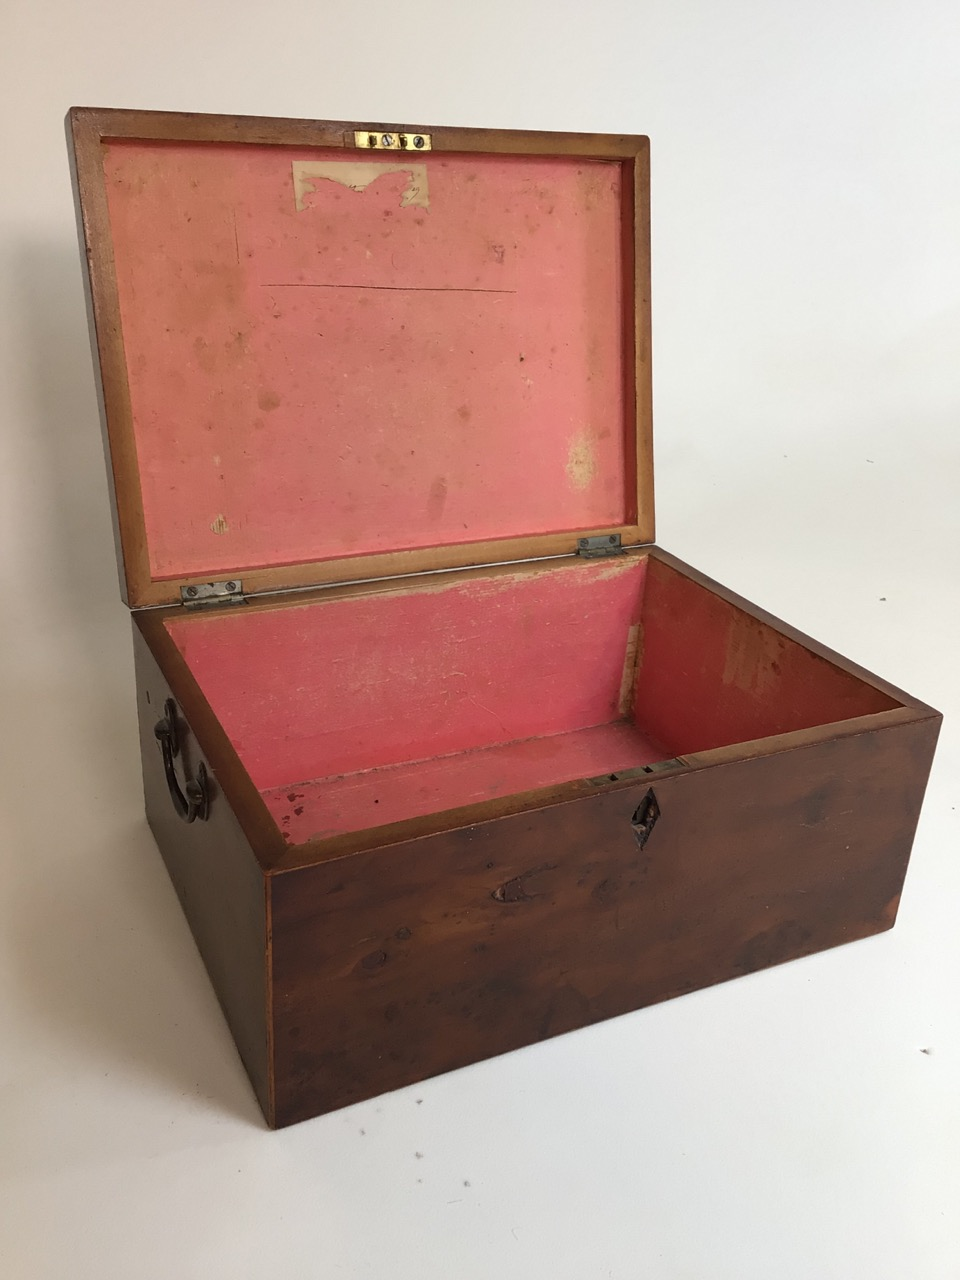 A Victorian parquetry walnut box with metal handles. W:33cm x D:24cm x H:15cm - Image 3 of 5